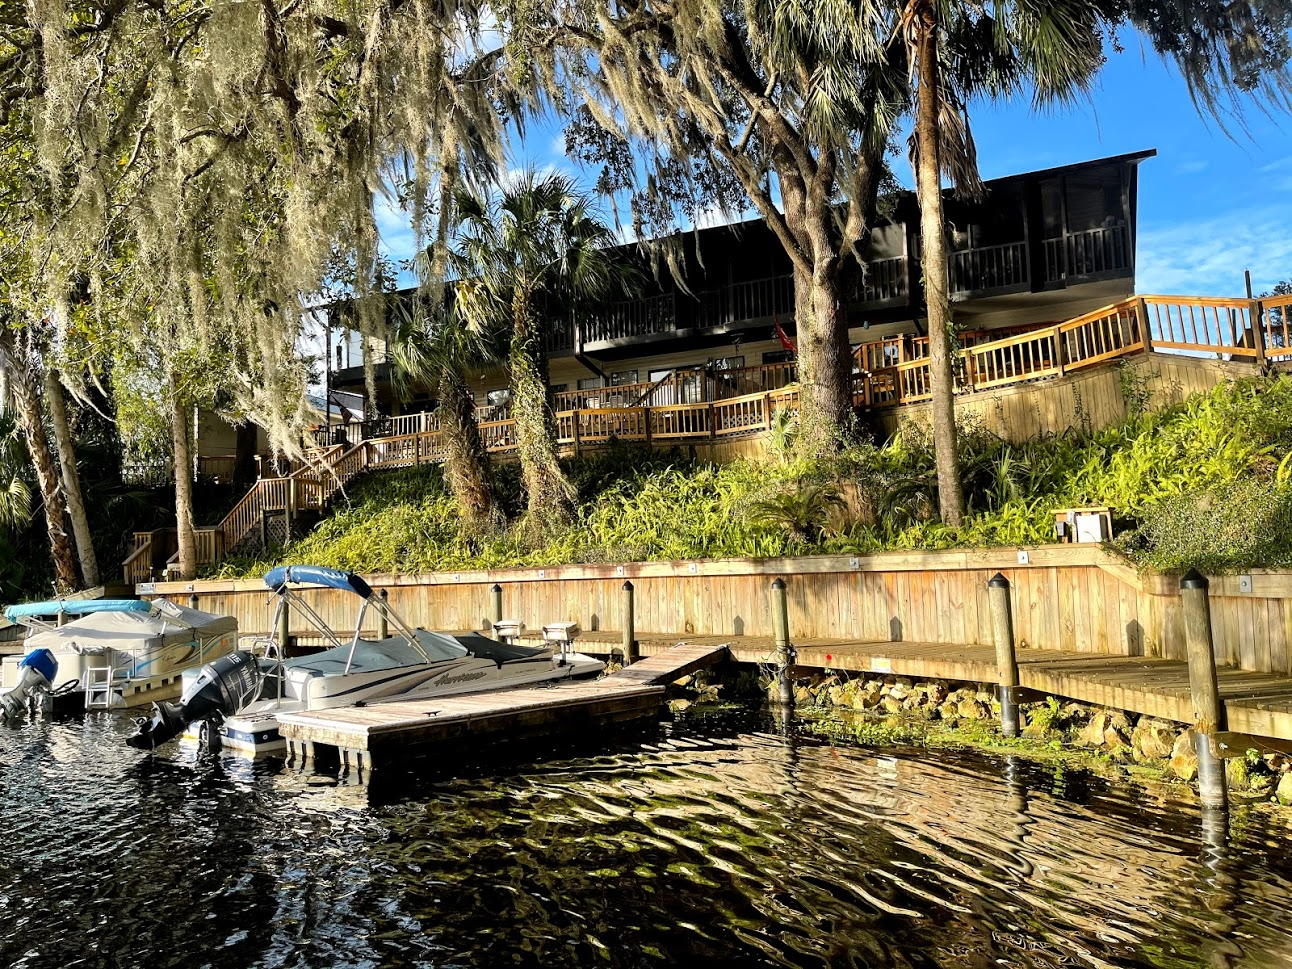 Bring your boat, trailer, and fishing poles to this waterfront rental property in Dunnellon, Florida; THE BASS CAPITOL OF THE WORLD!  View the beautiful Rainbow River and Withlacoochee River from the HIGHEST point on the river. This property is also located right down the street from biking trails. It's the perfect location for the outdoorsman or anyone who wants a real Florida experience. Rent this 2 Bedroom, 2 bath, condo located right on the water in the downtown Dunnellon area at the confluence of the beautiful Rainbow River and Withlacoochee River. This Dunnellon rental is close to the Gulf of Mexico, shopping, great restaurants and activities. Will rent for $1750 with up to $150 cap on the electric included! Don't miss out on this one of a kind rental. (Any rental reservations for less than six months & one day have 11% short term tax)